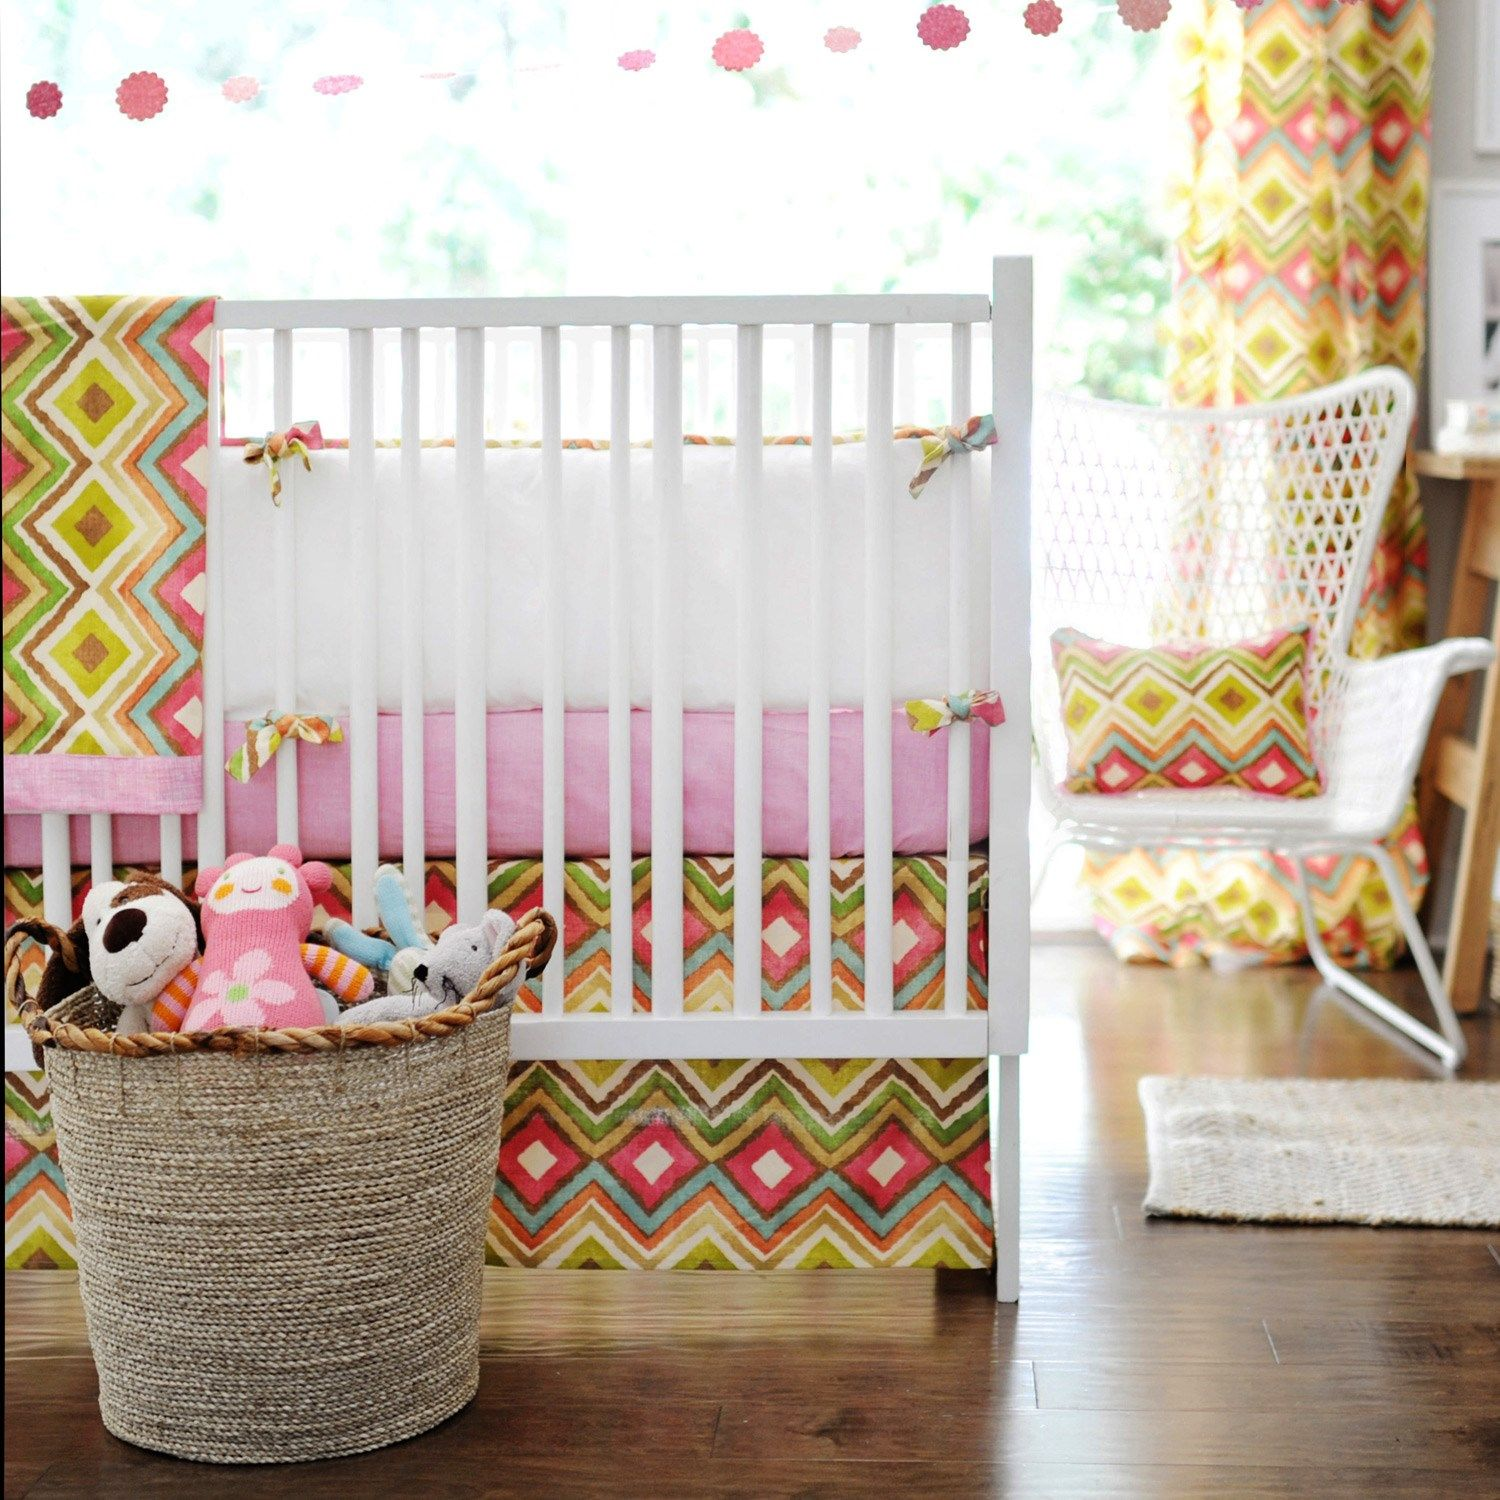 New Arrivals Crib Bedding Street Of Dreams Pink #Laylagrayce